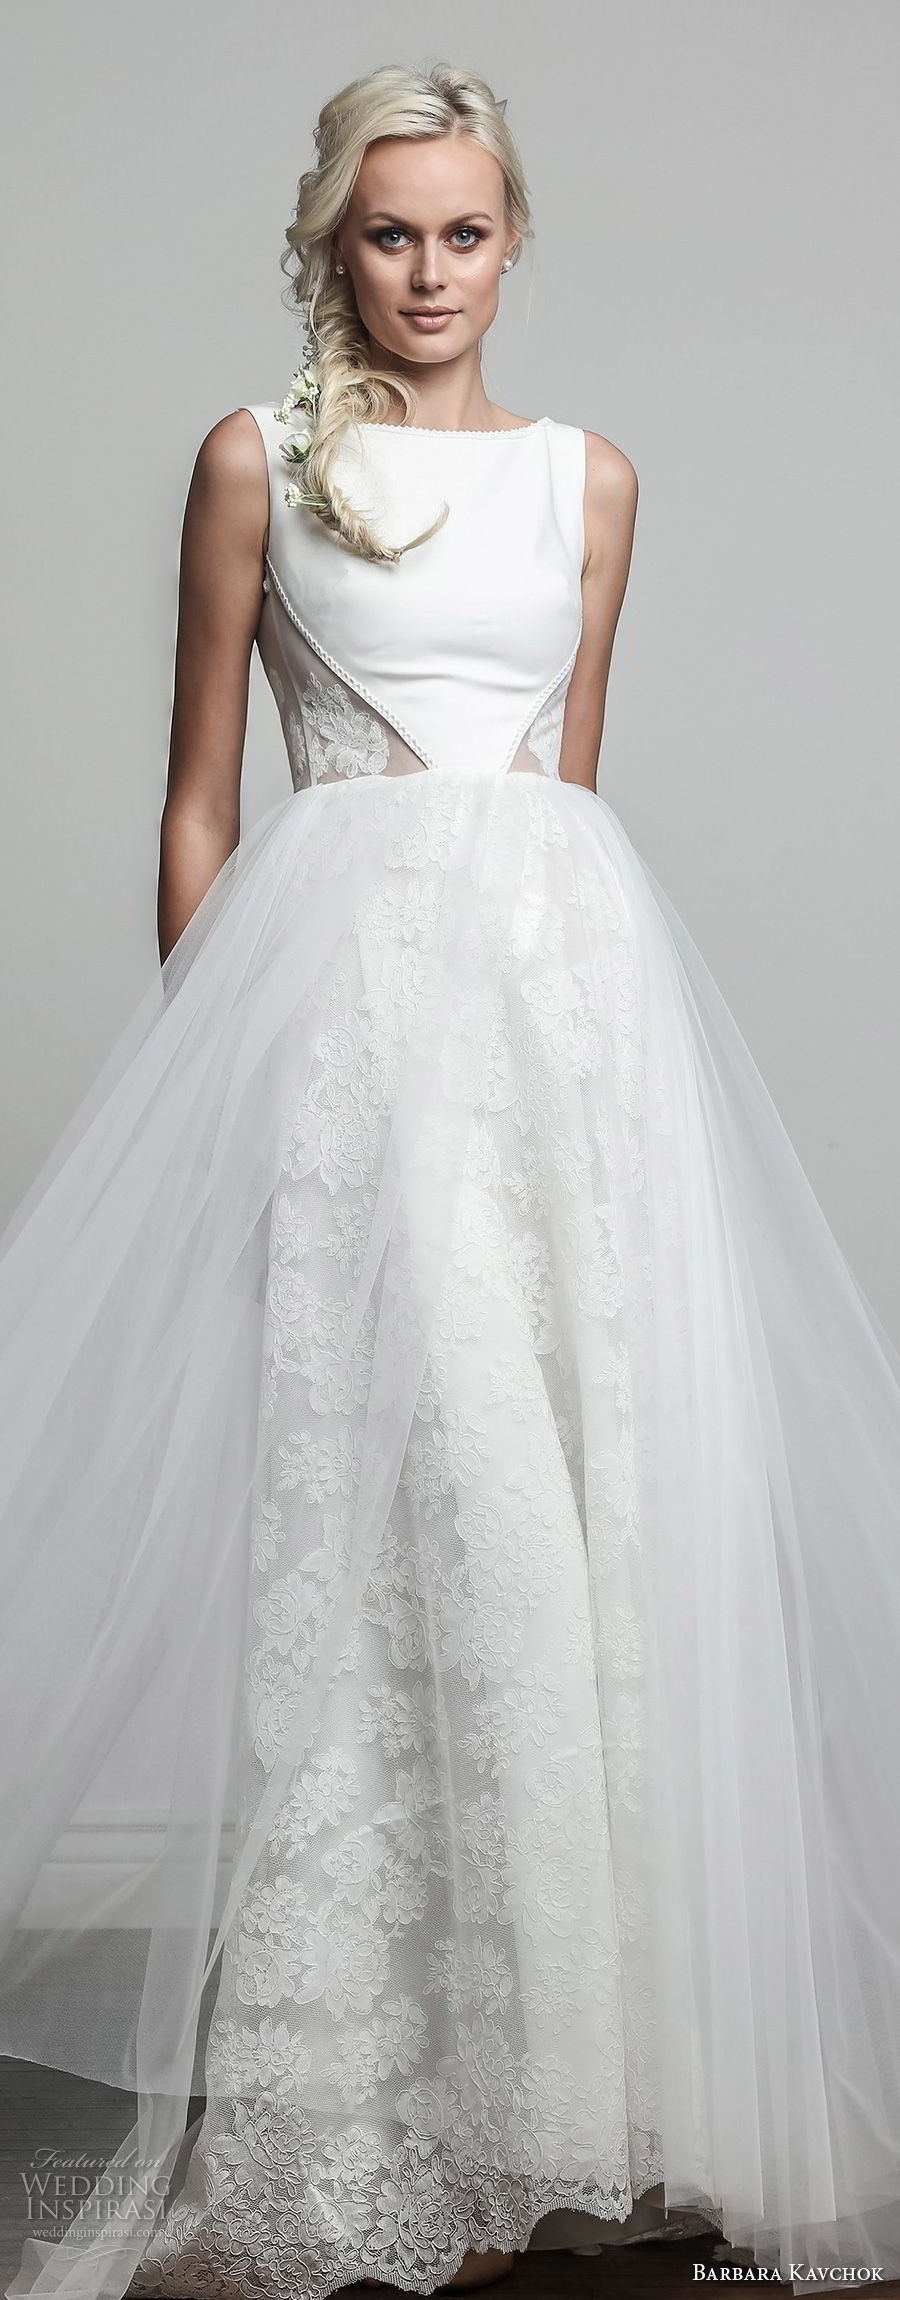 barbara kavchok spring 2018 bridal sleeveless bateau neck lightly embellished simple bodice tulle skirt romantic soft a line wedding dress sheer button back sweep train (melody) lv